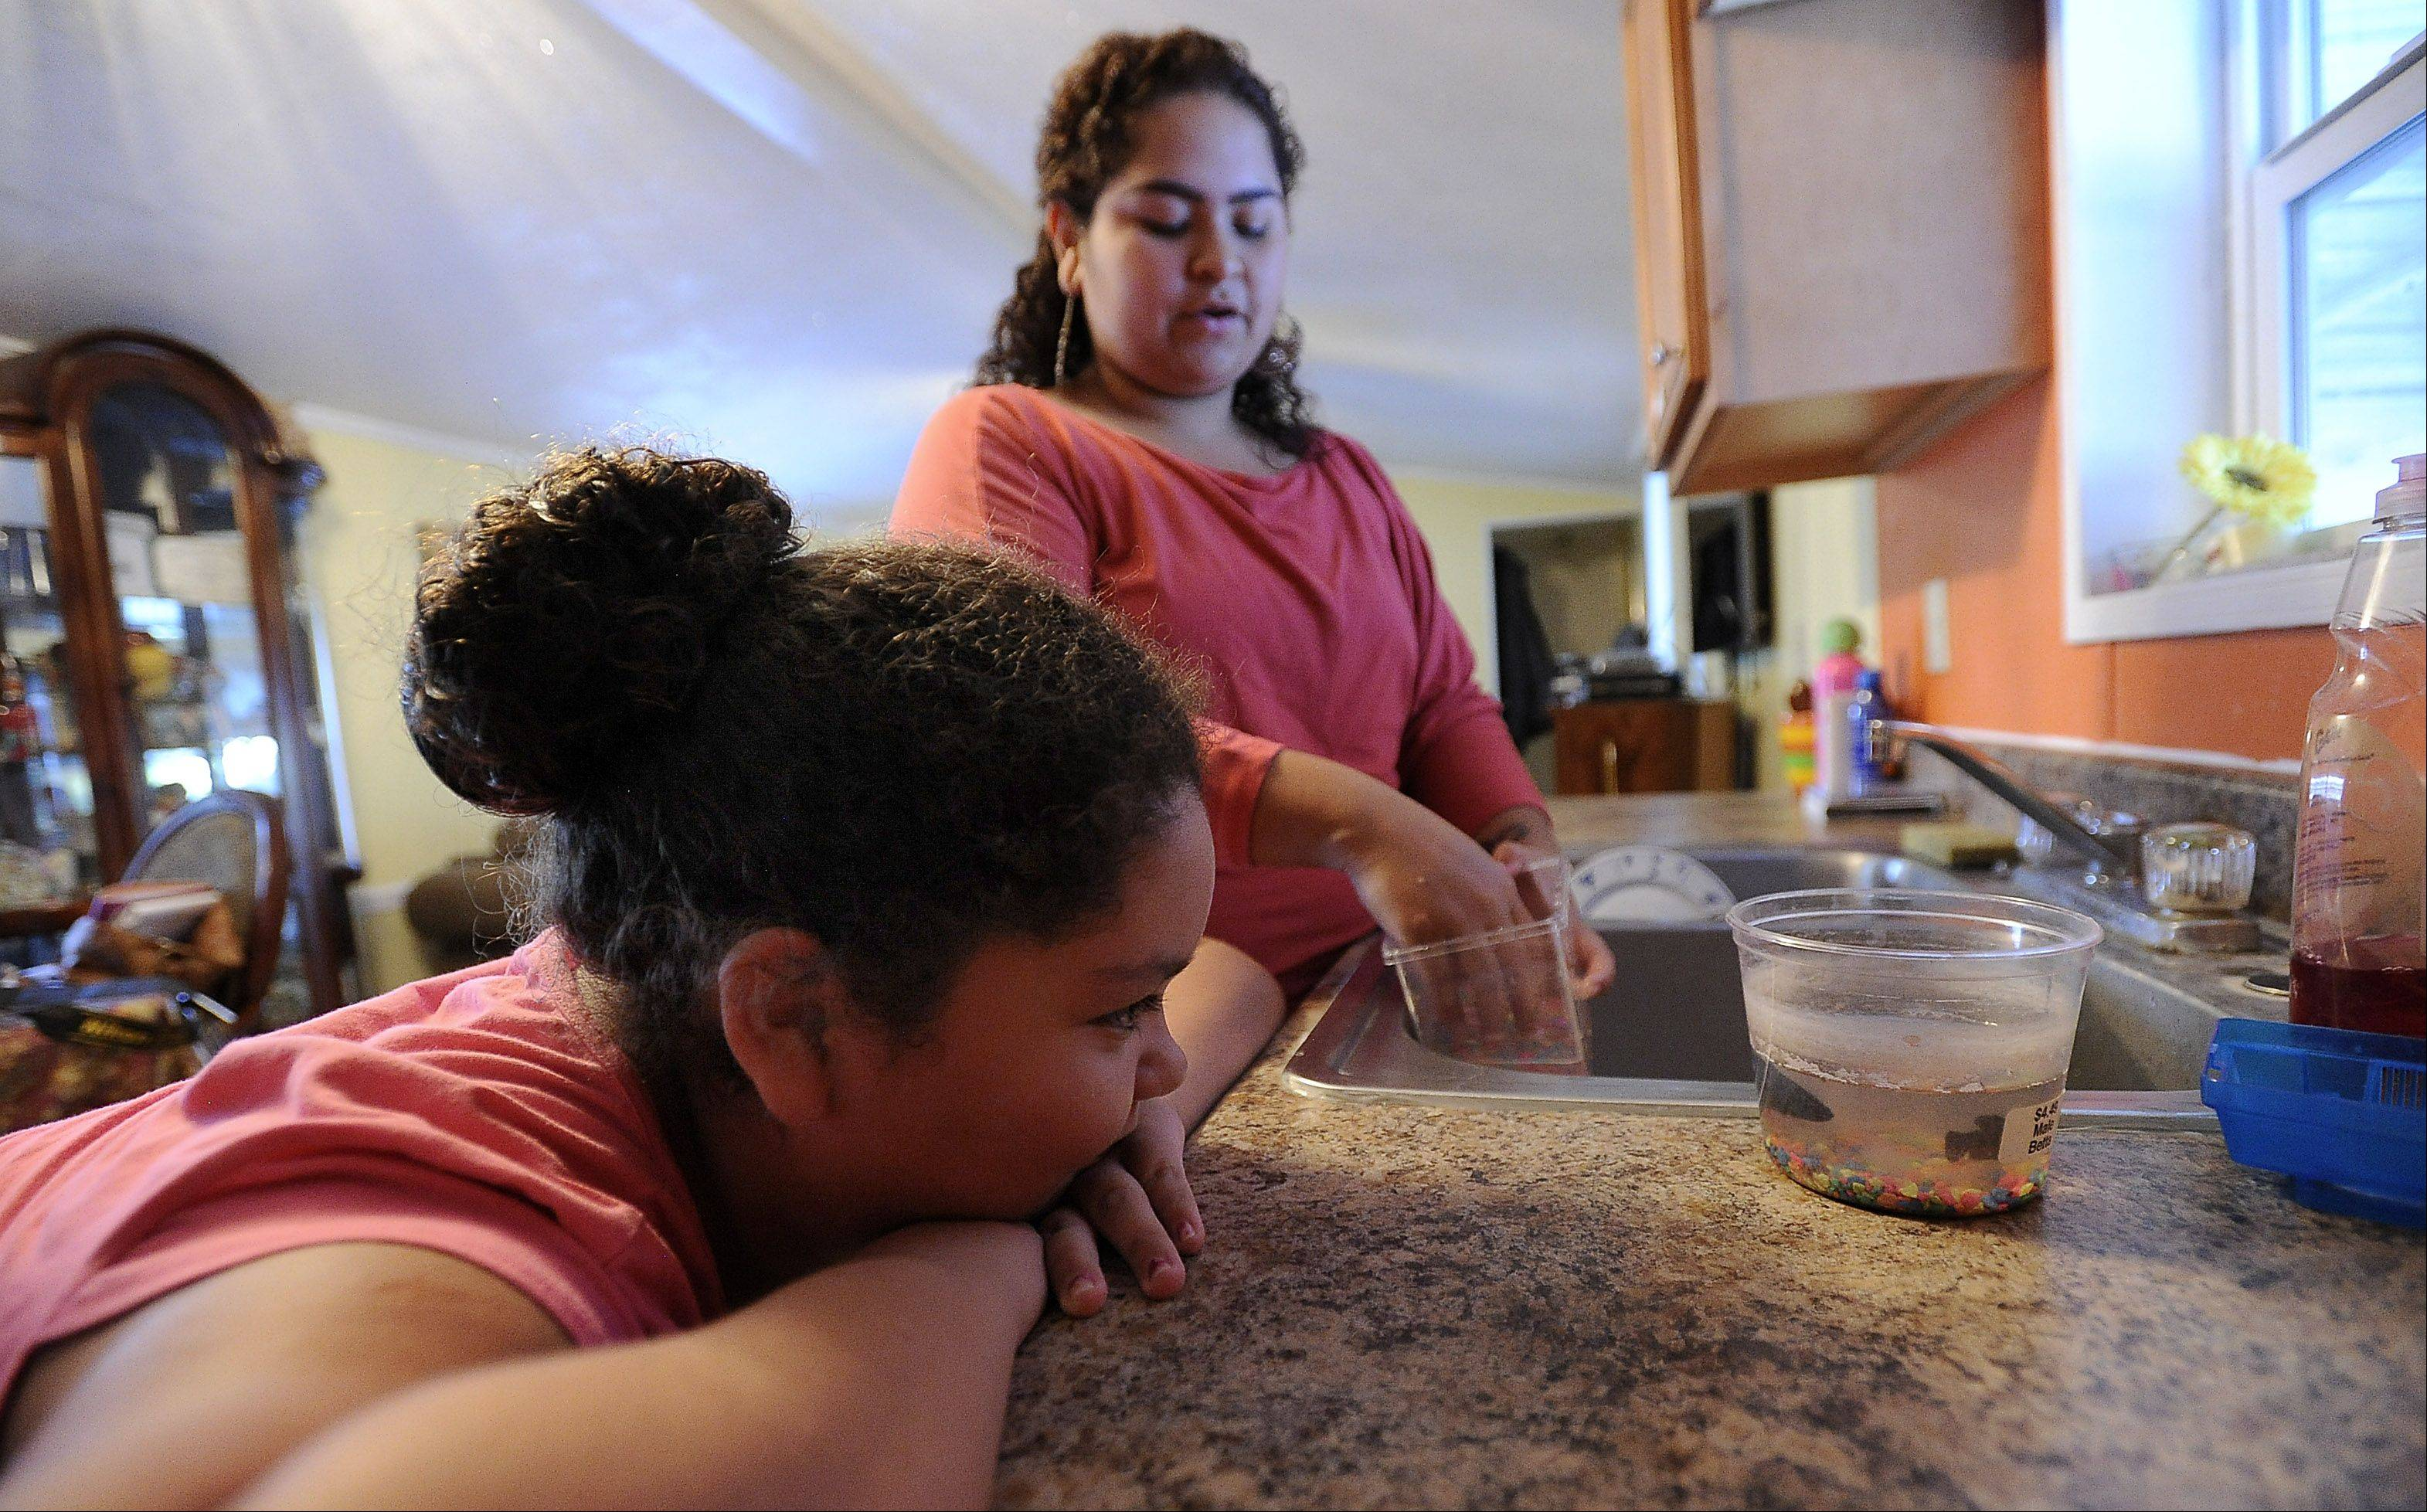 Since losing their mother 2½ years ago, Greta Ramirez, 12, and her sister Karen Ramirez, 22, have taken on household duties, including cleaning the fish tank.